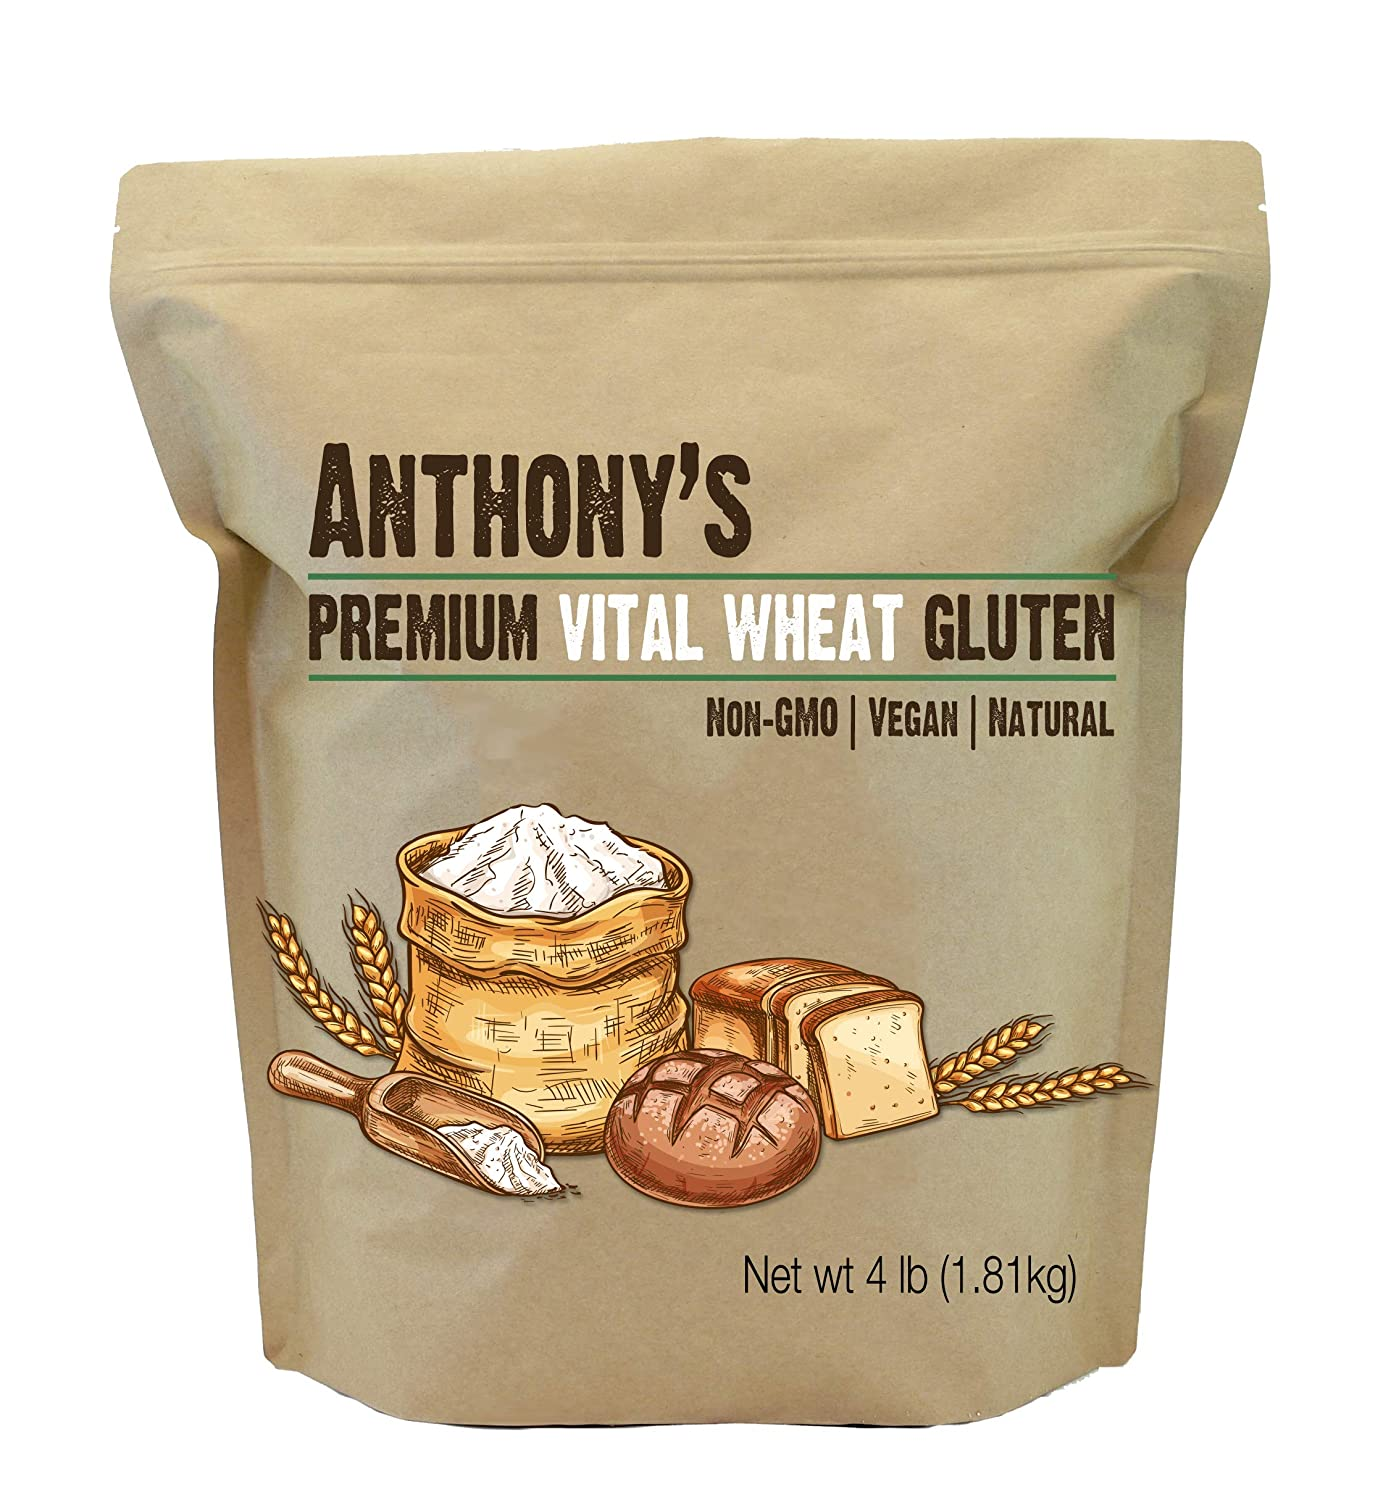 Anthony's Vital Wheat Gluten, 4 lb